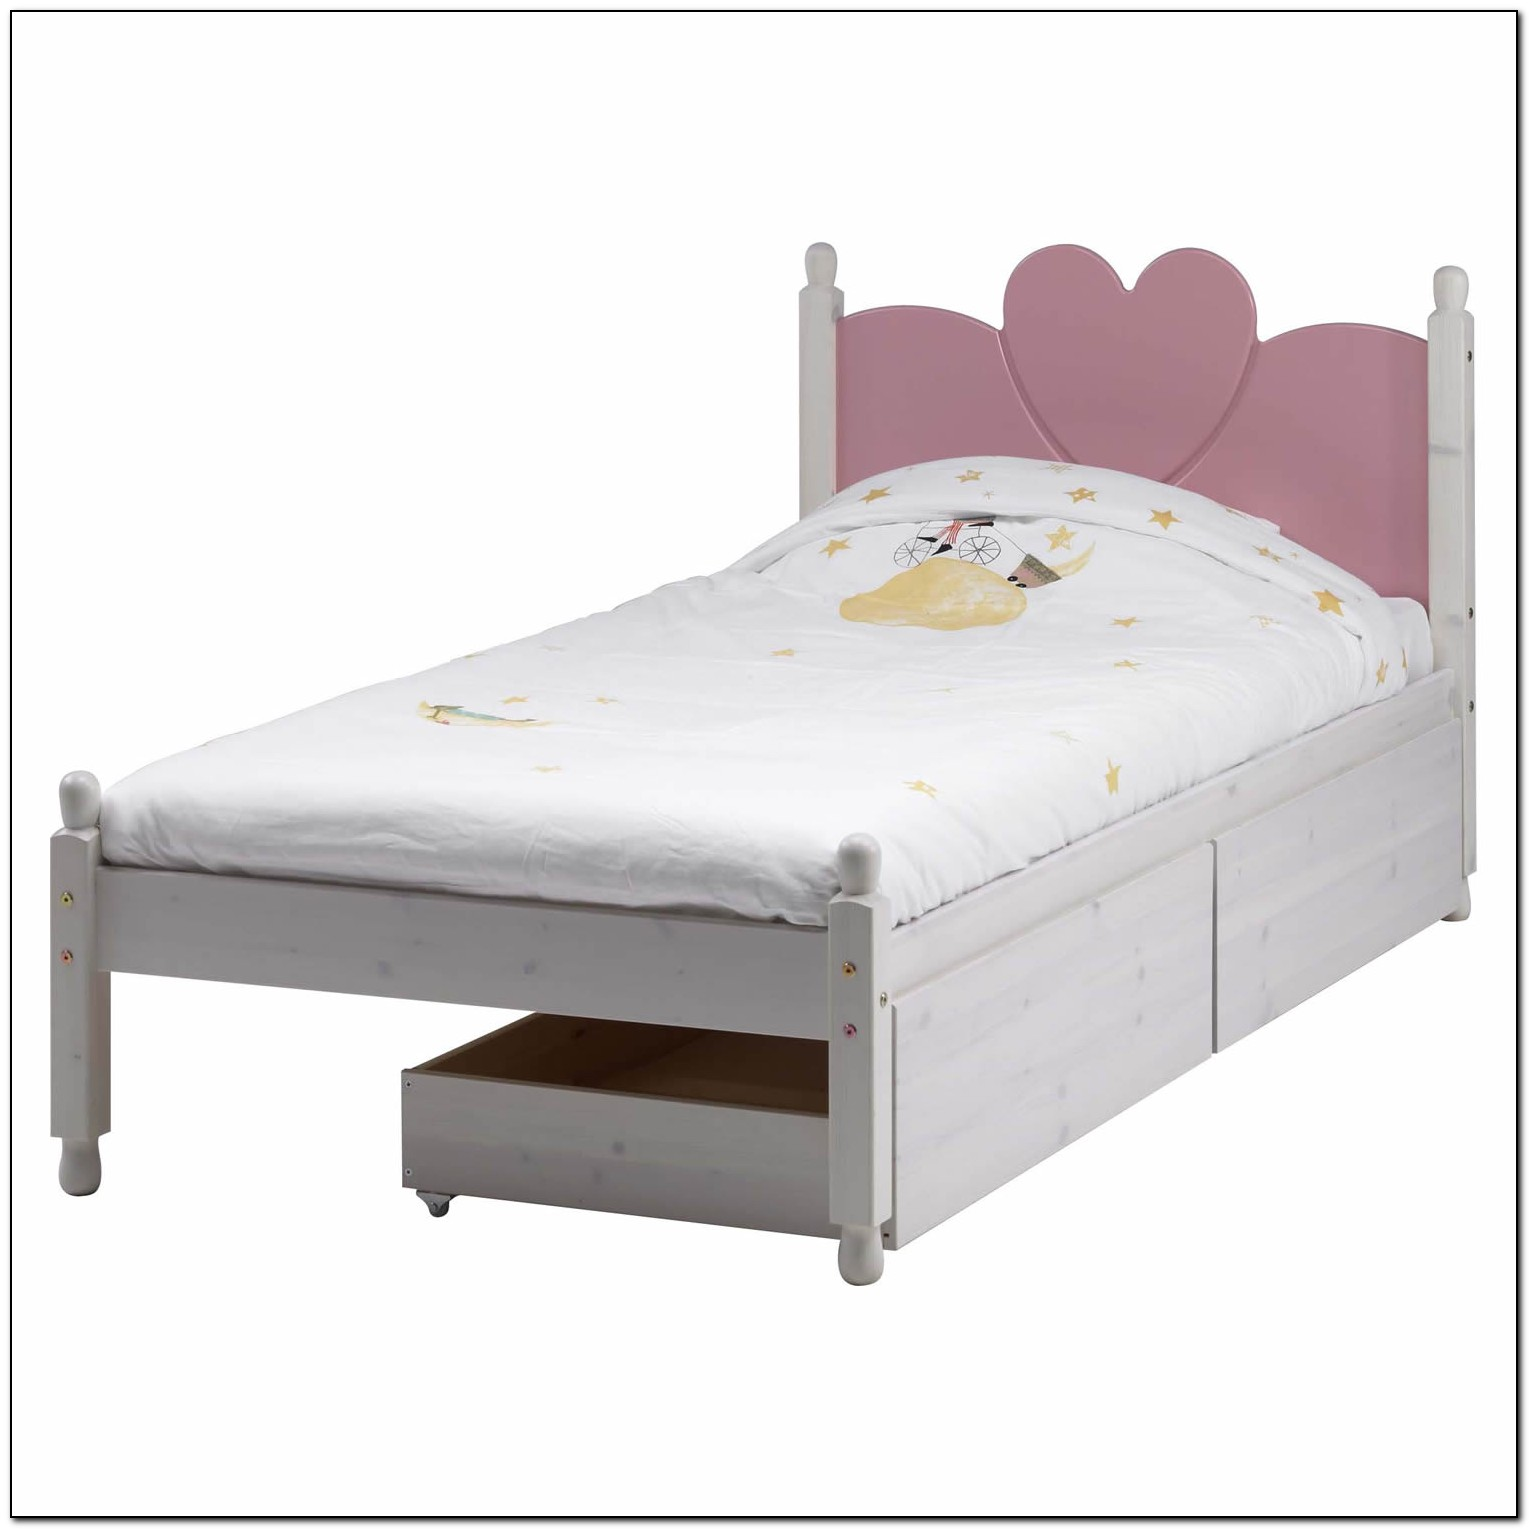 Beds With Drawers Uk